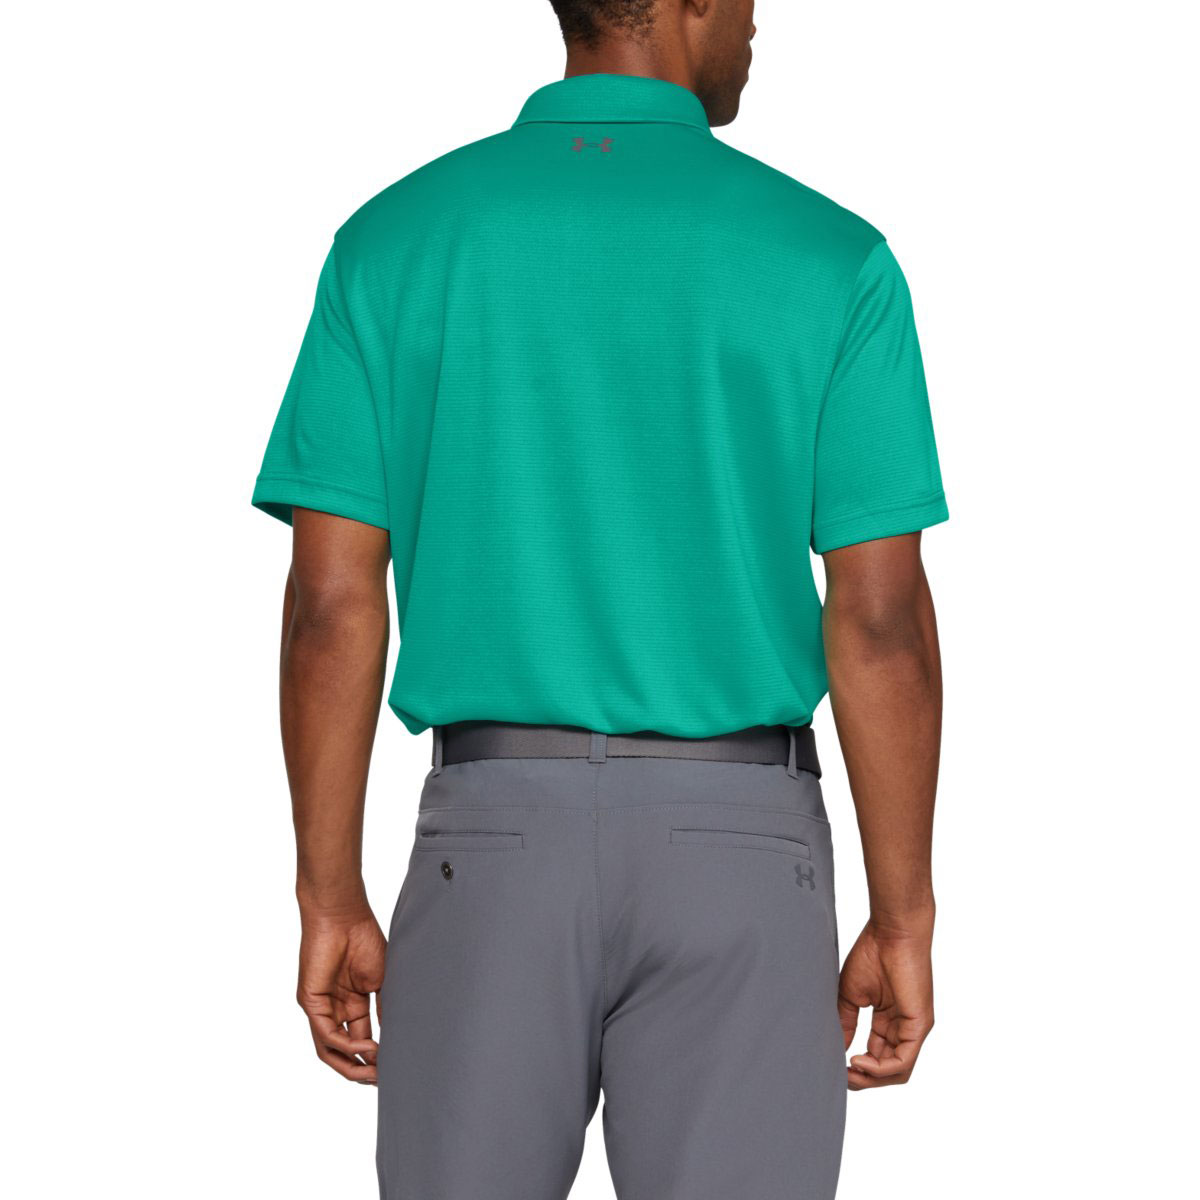 Under-Armour-Mens-2019-Golf-Tech-Wicking-Textured-Soft-Light-Polo-Shirt thumbnail 35